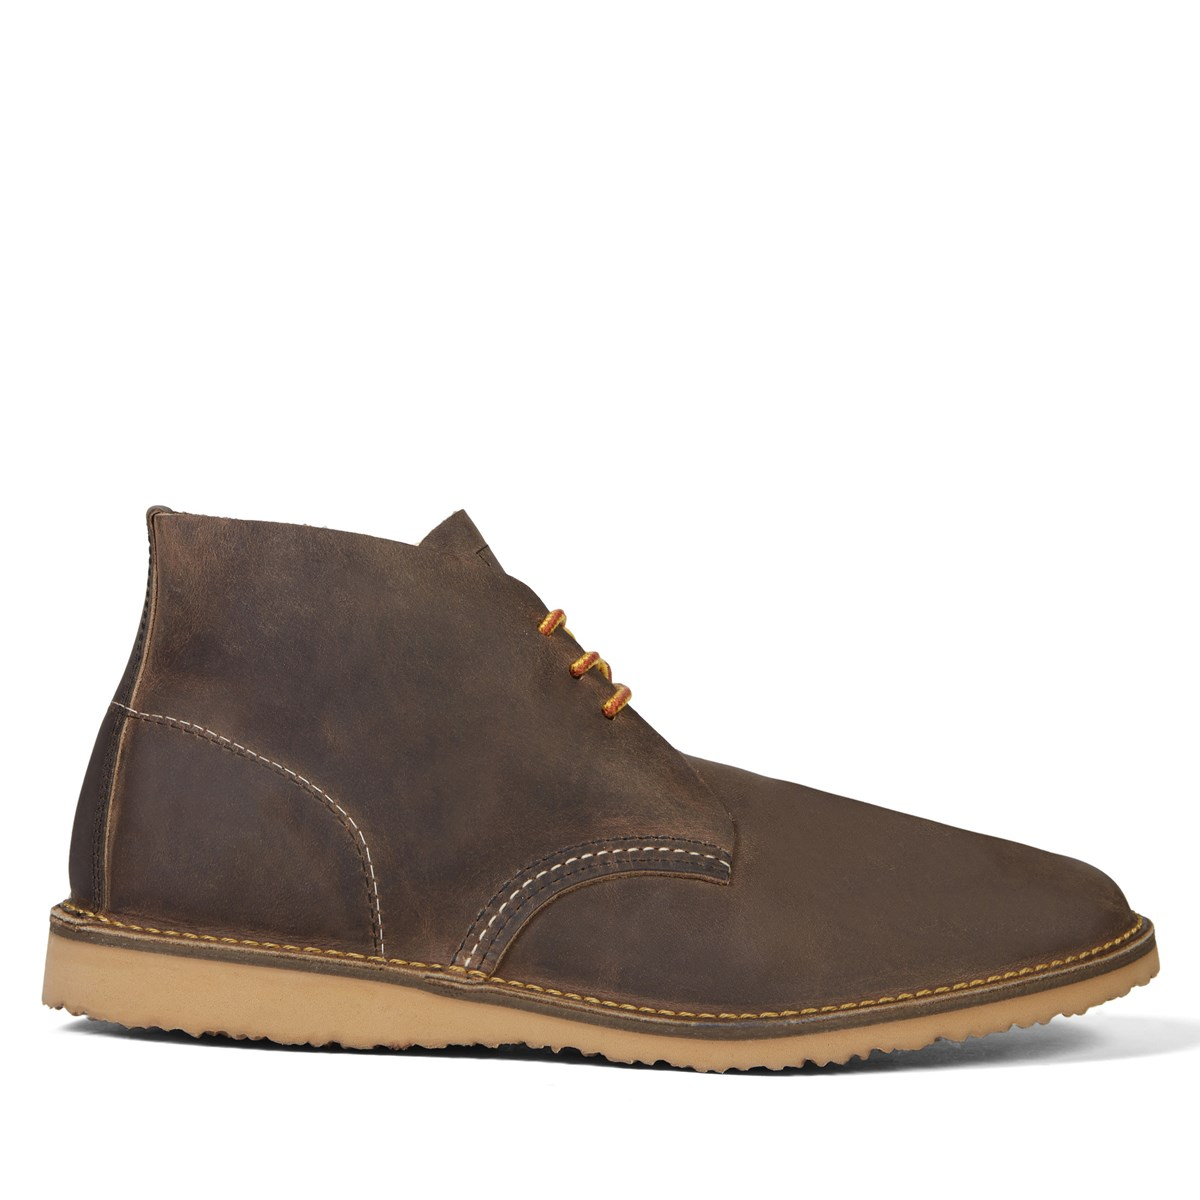 Men's Weekender Brown Chukka Boot